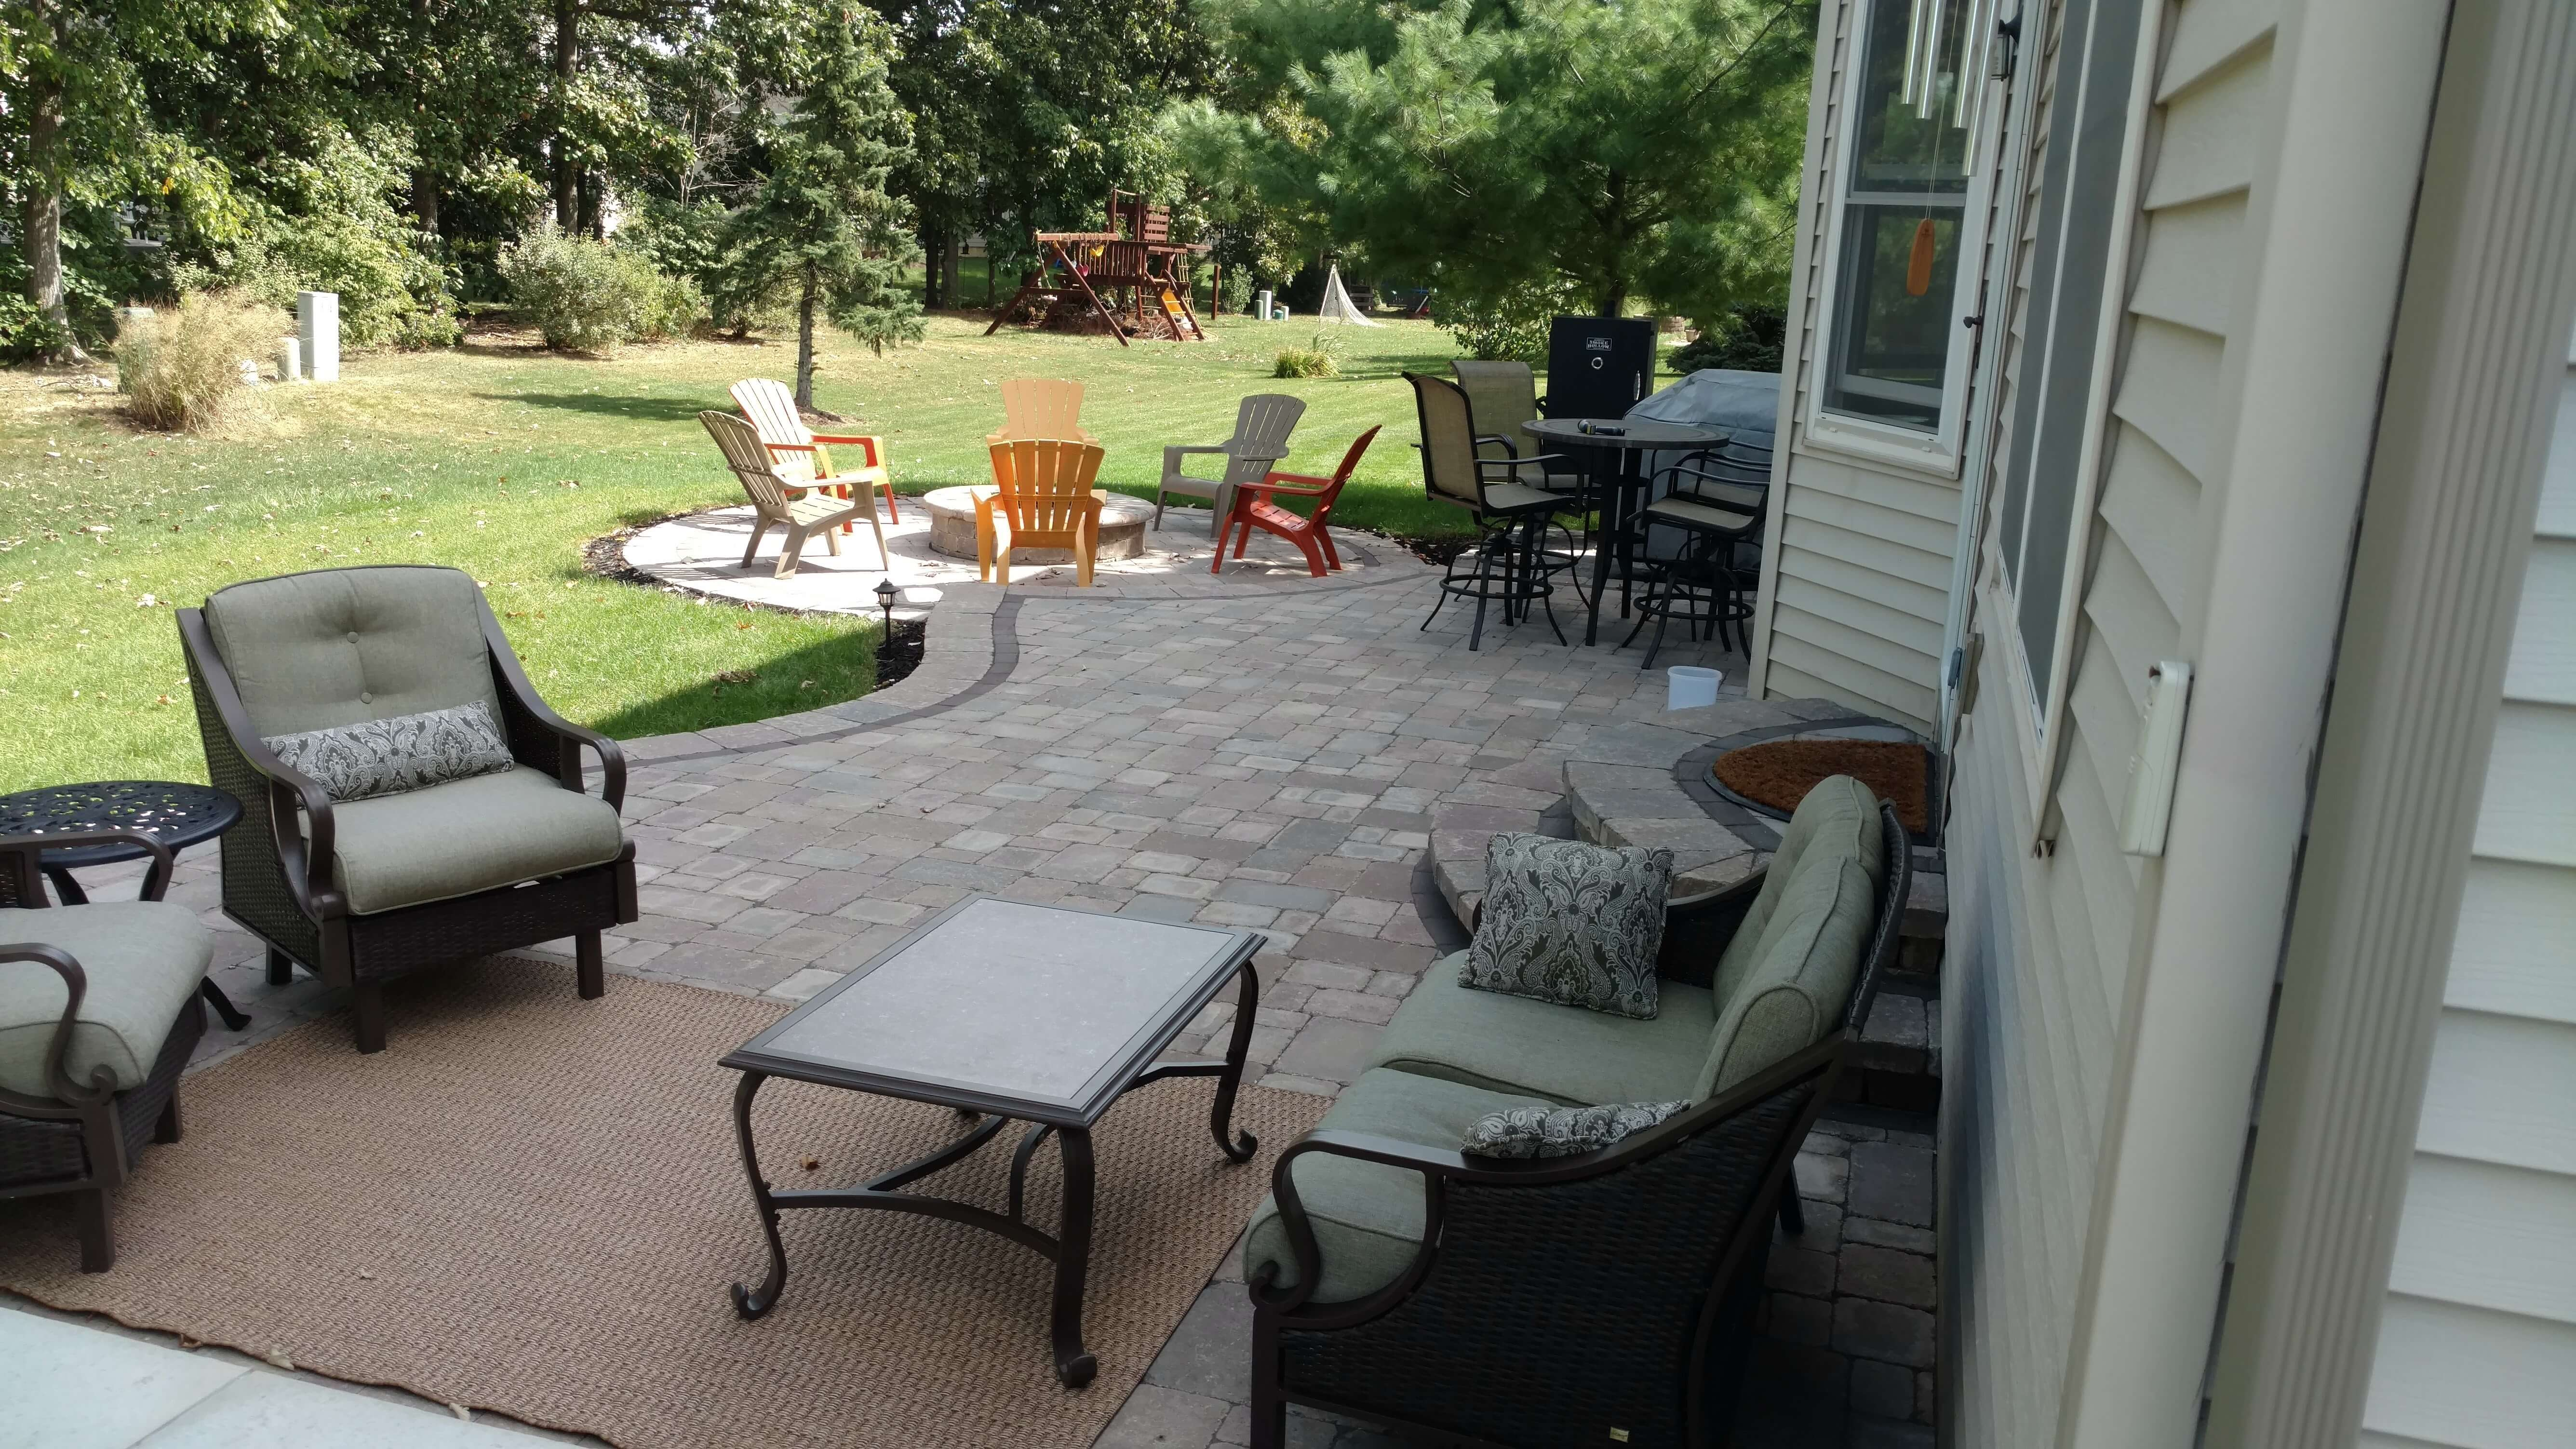 Patio seating area and fire pit